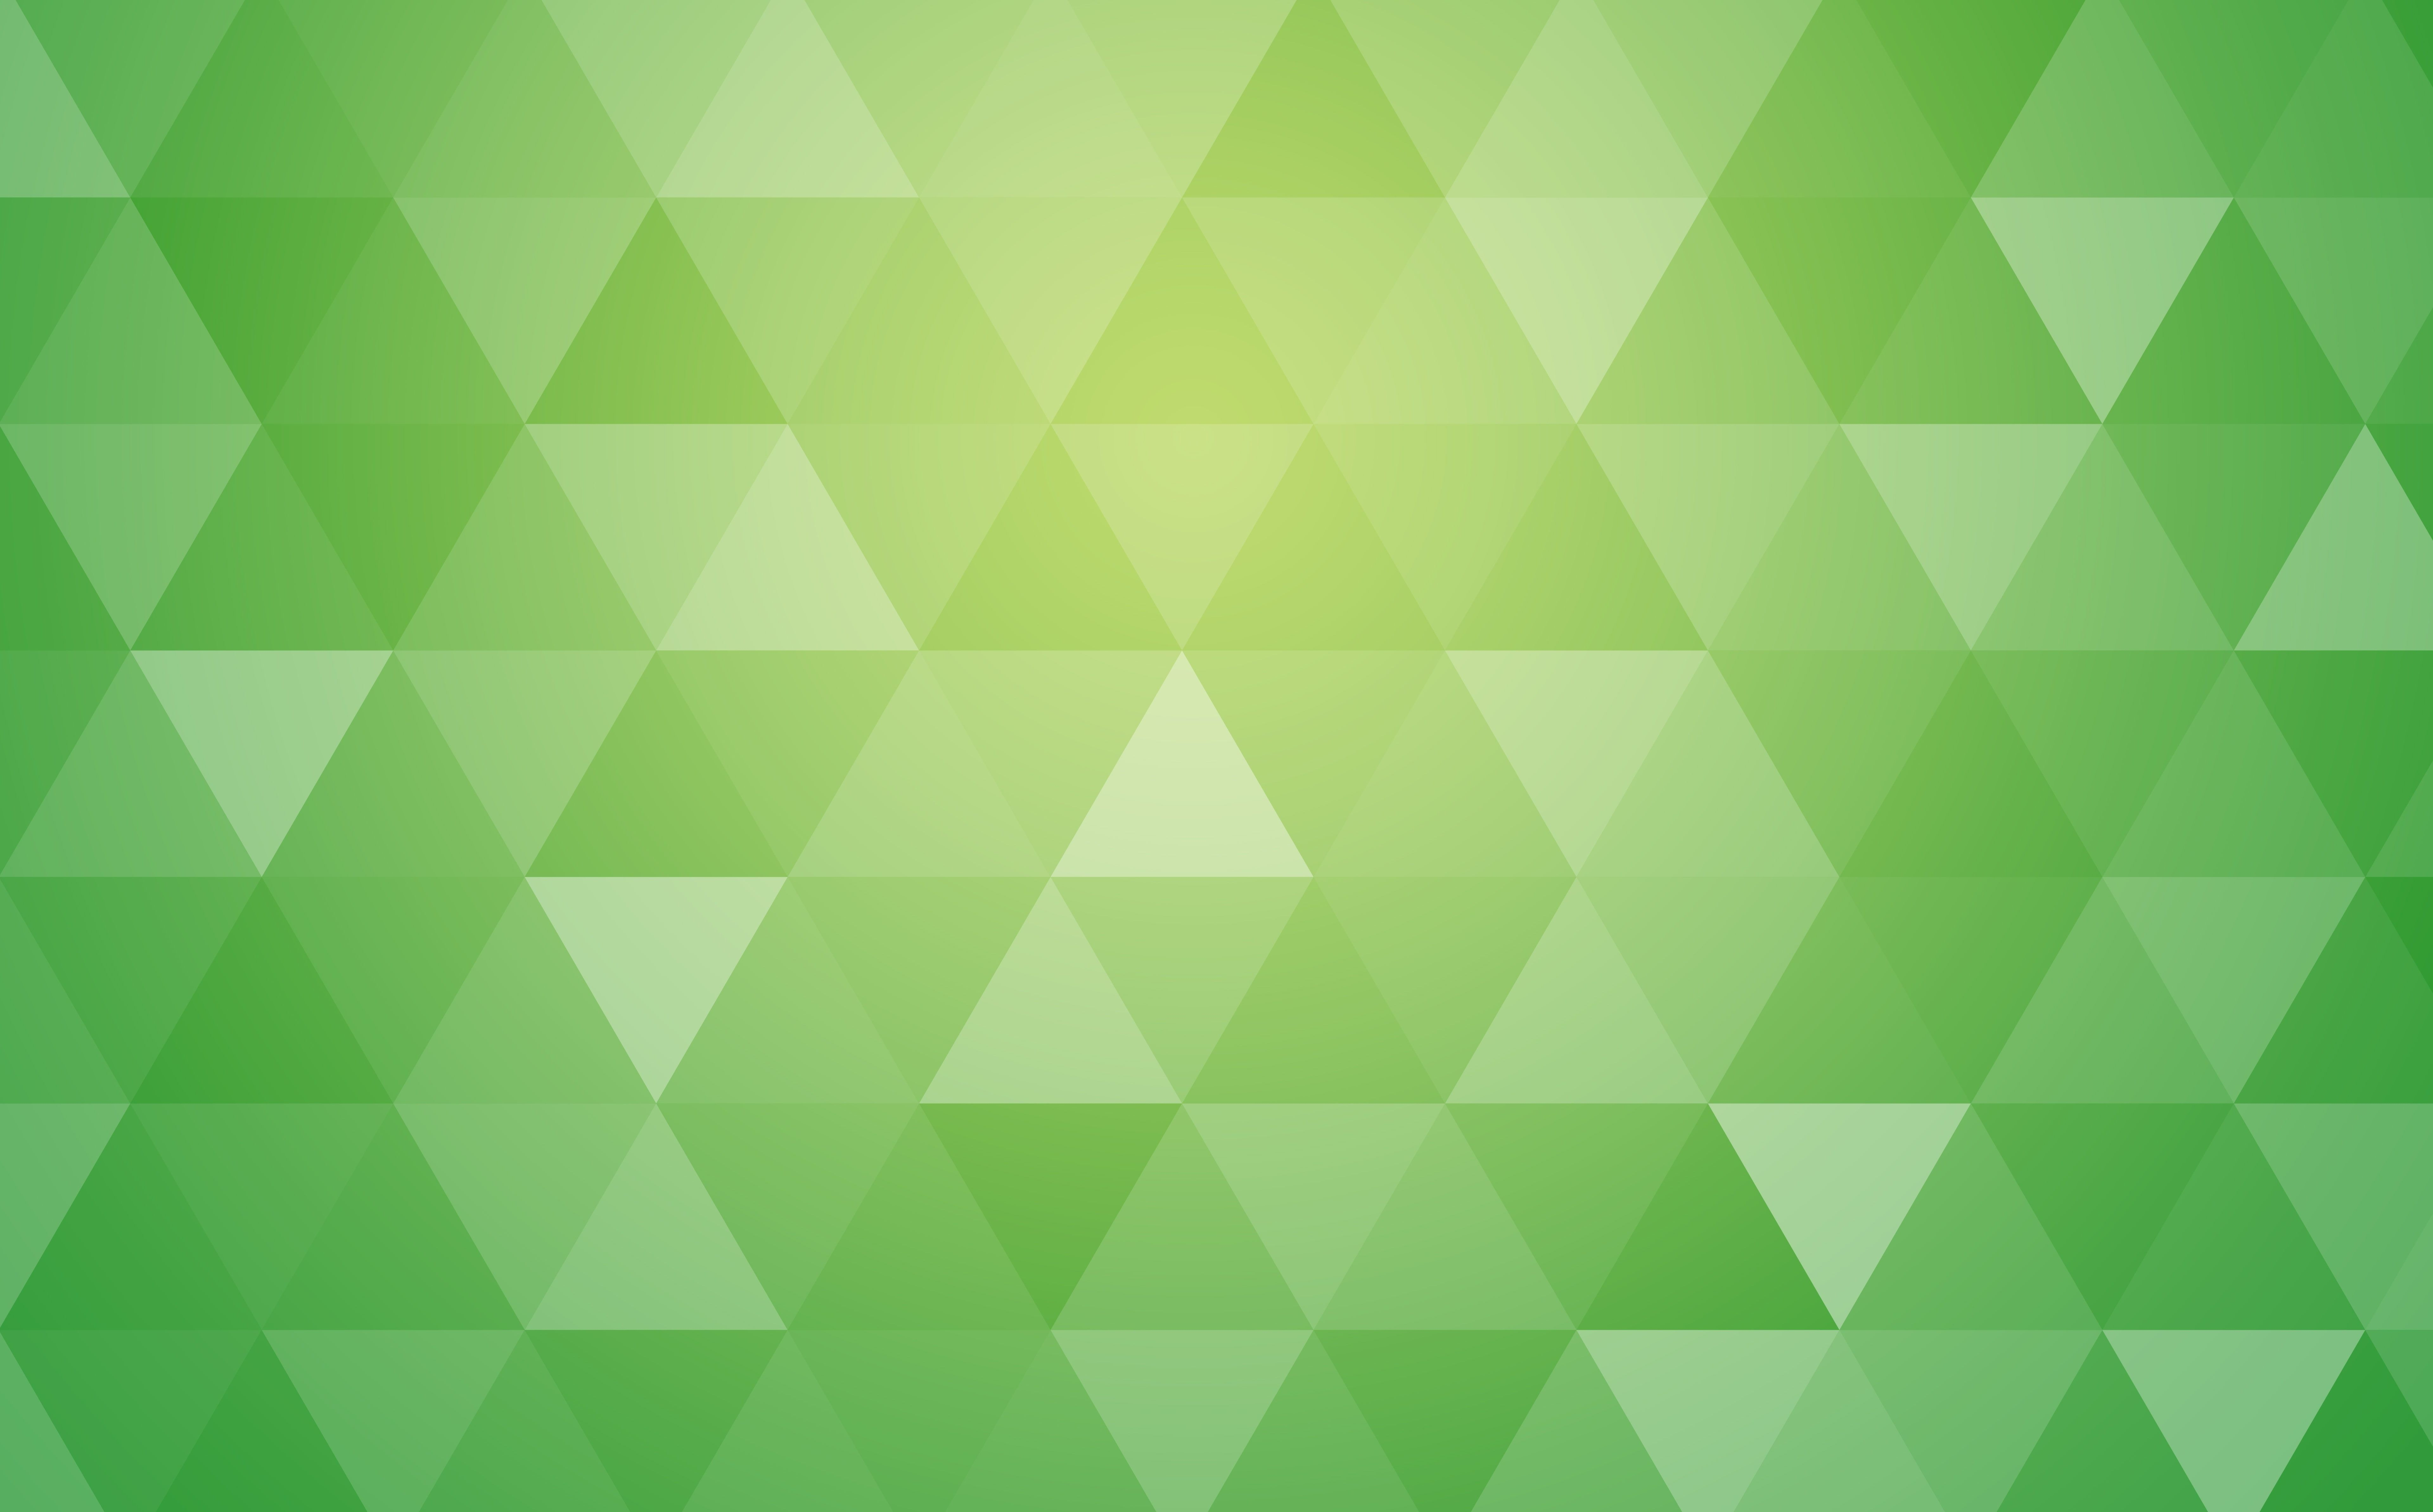 Green Abstract Geometric Triangle Background Aero Patterns